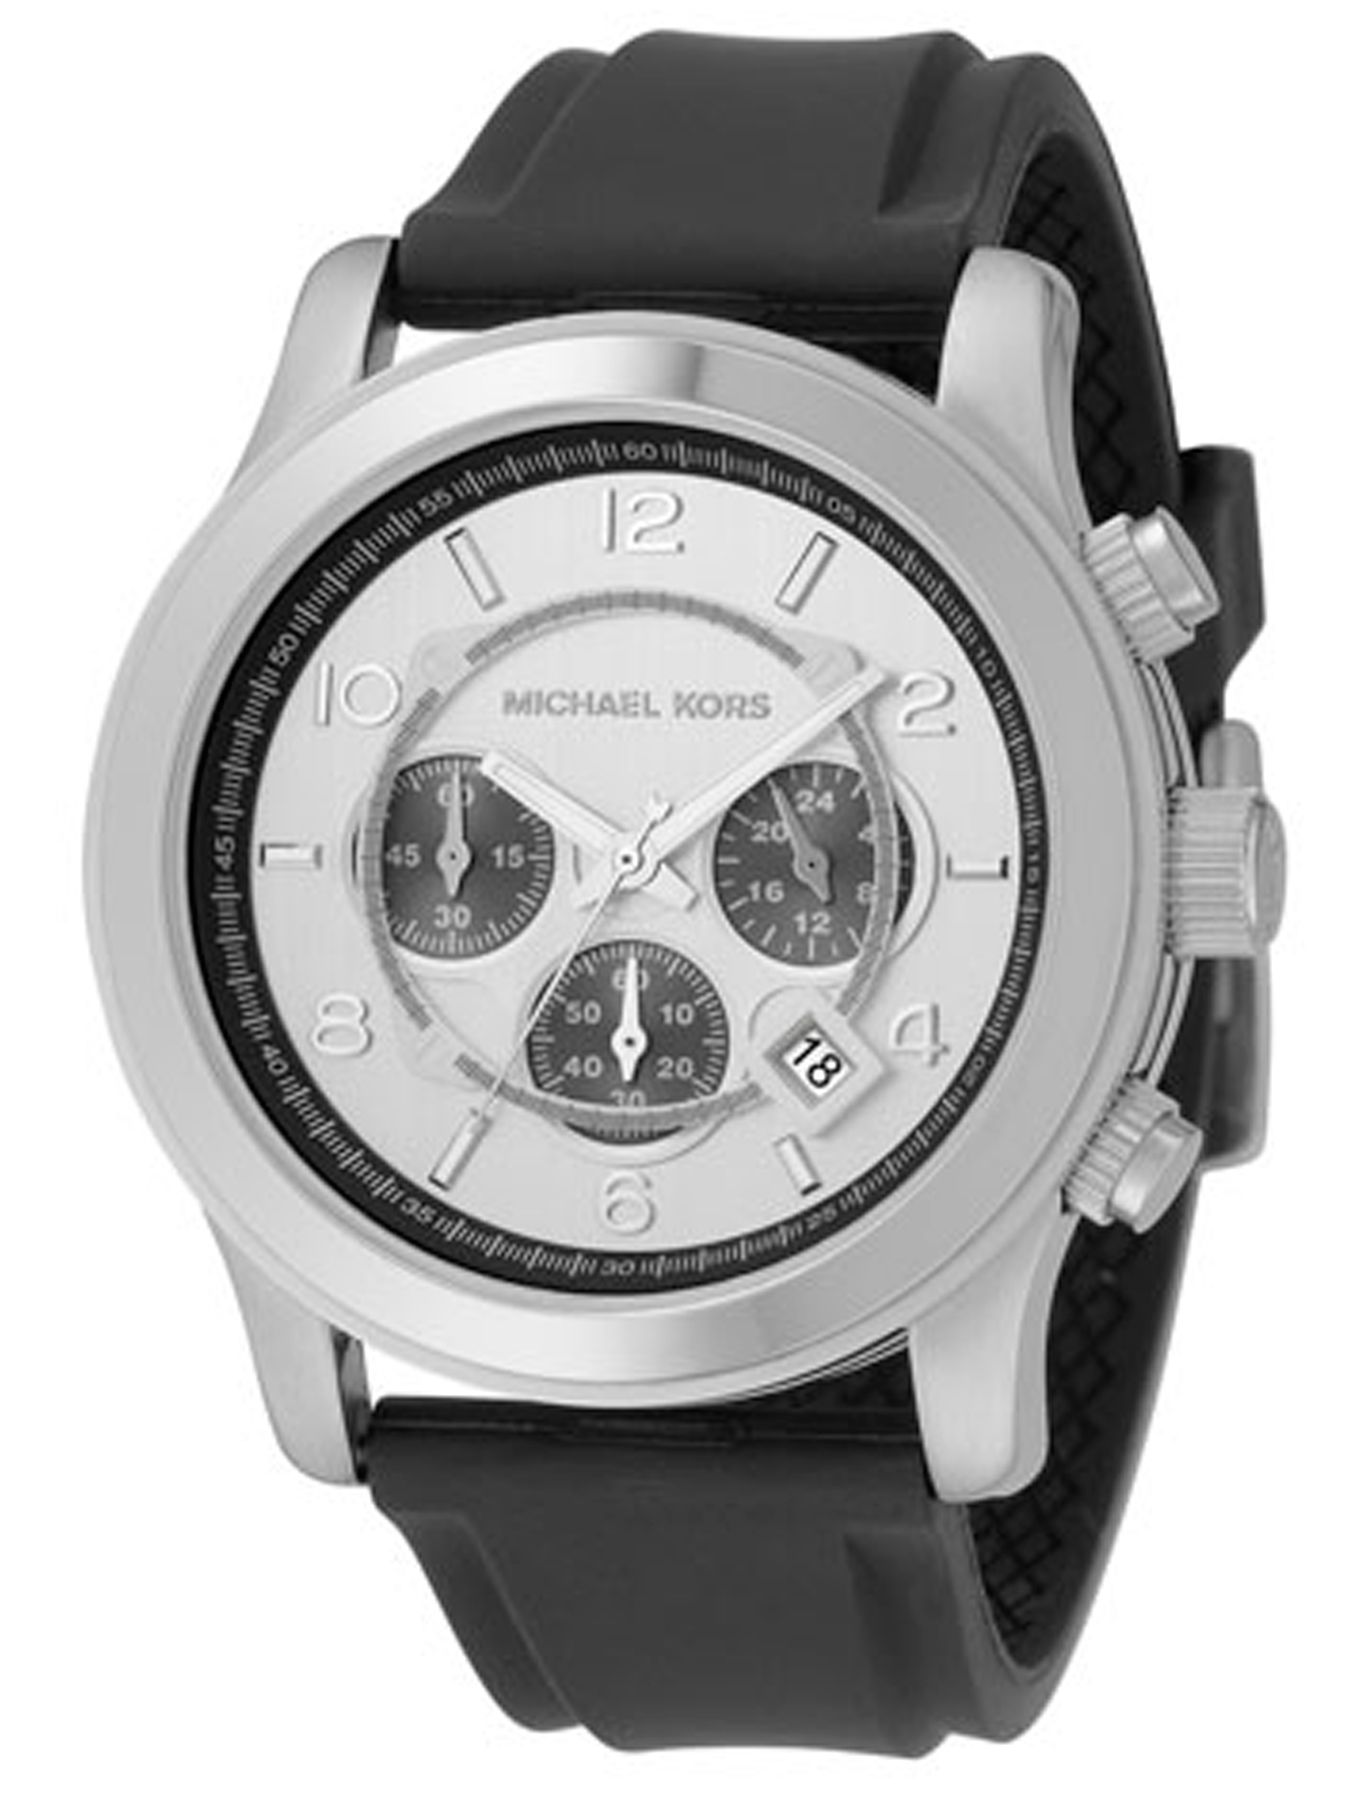 Michael Kors Classic sport rubber strap watch